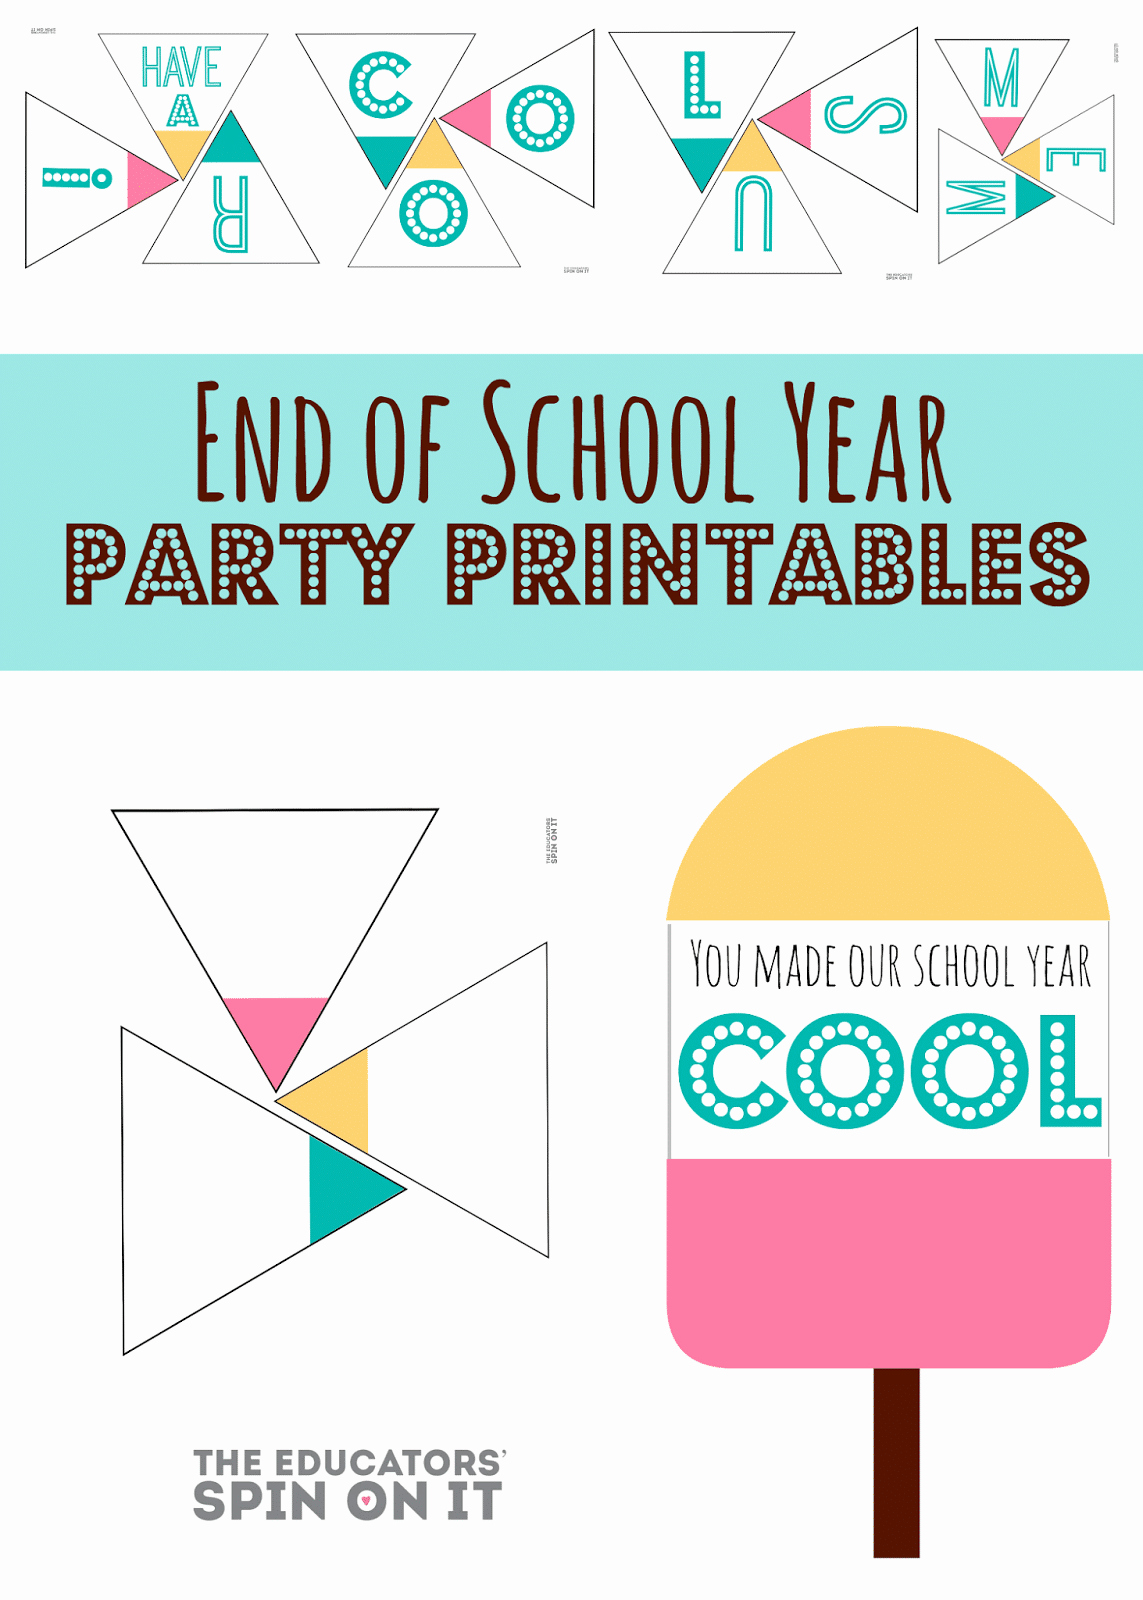 End Of Year Celebration Invitation Luxury End Of School Year Party Idea the Educators Spin It